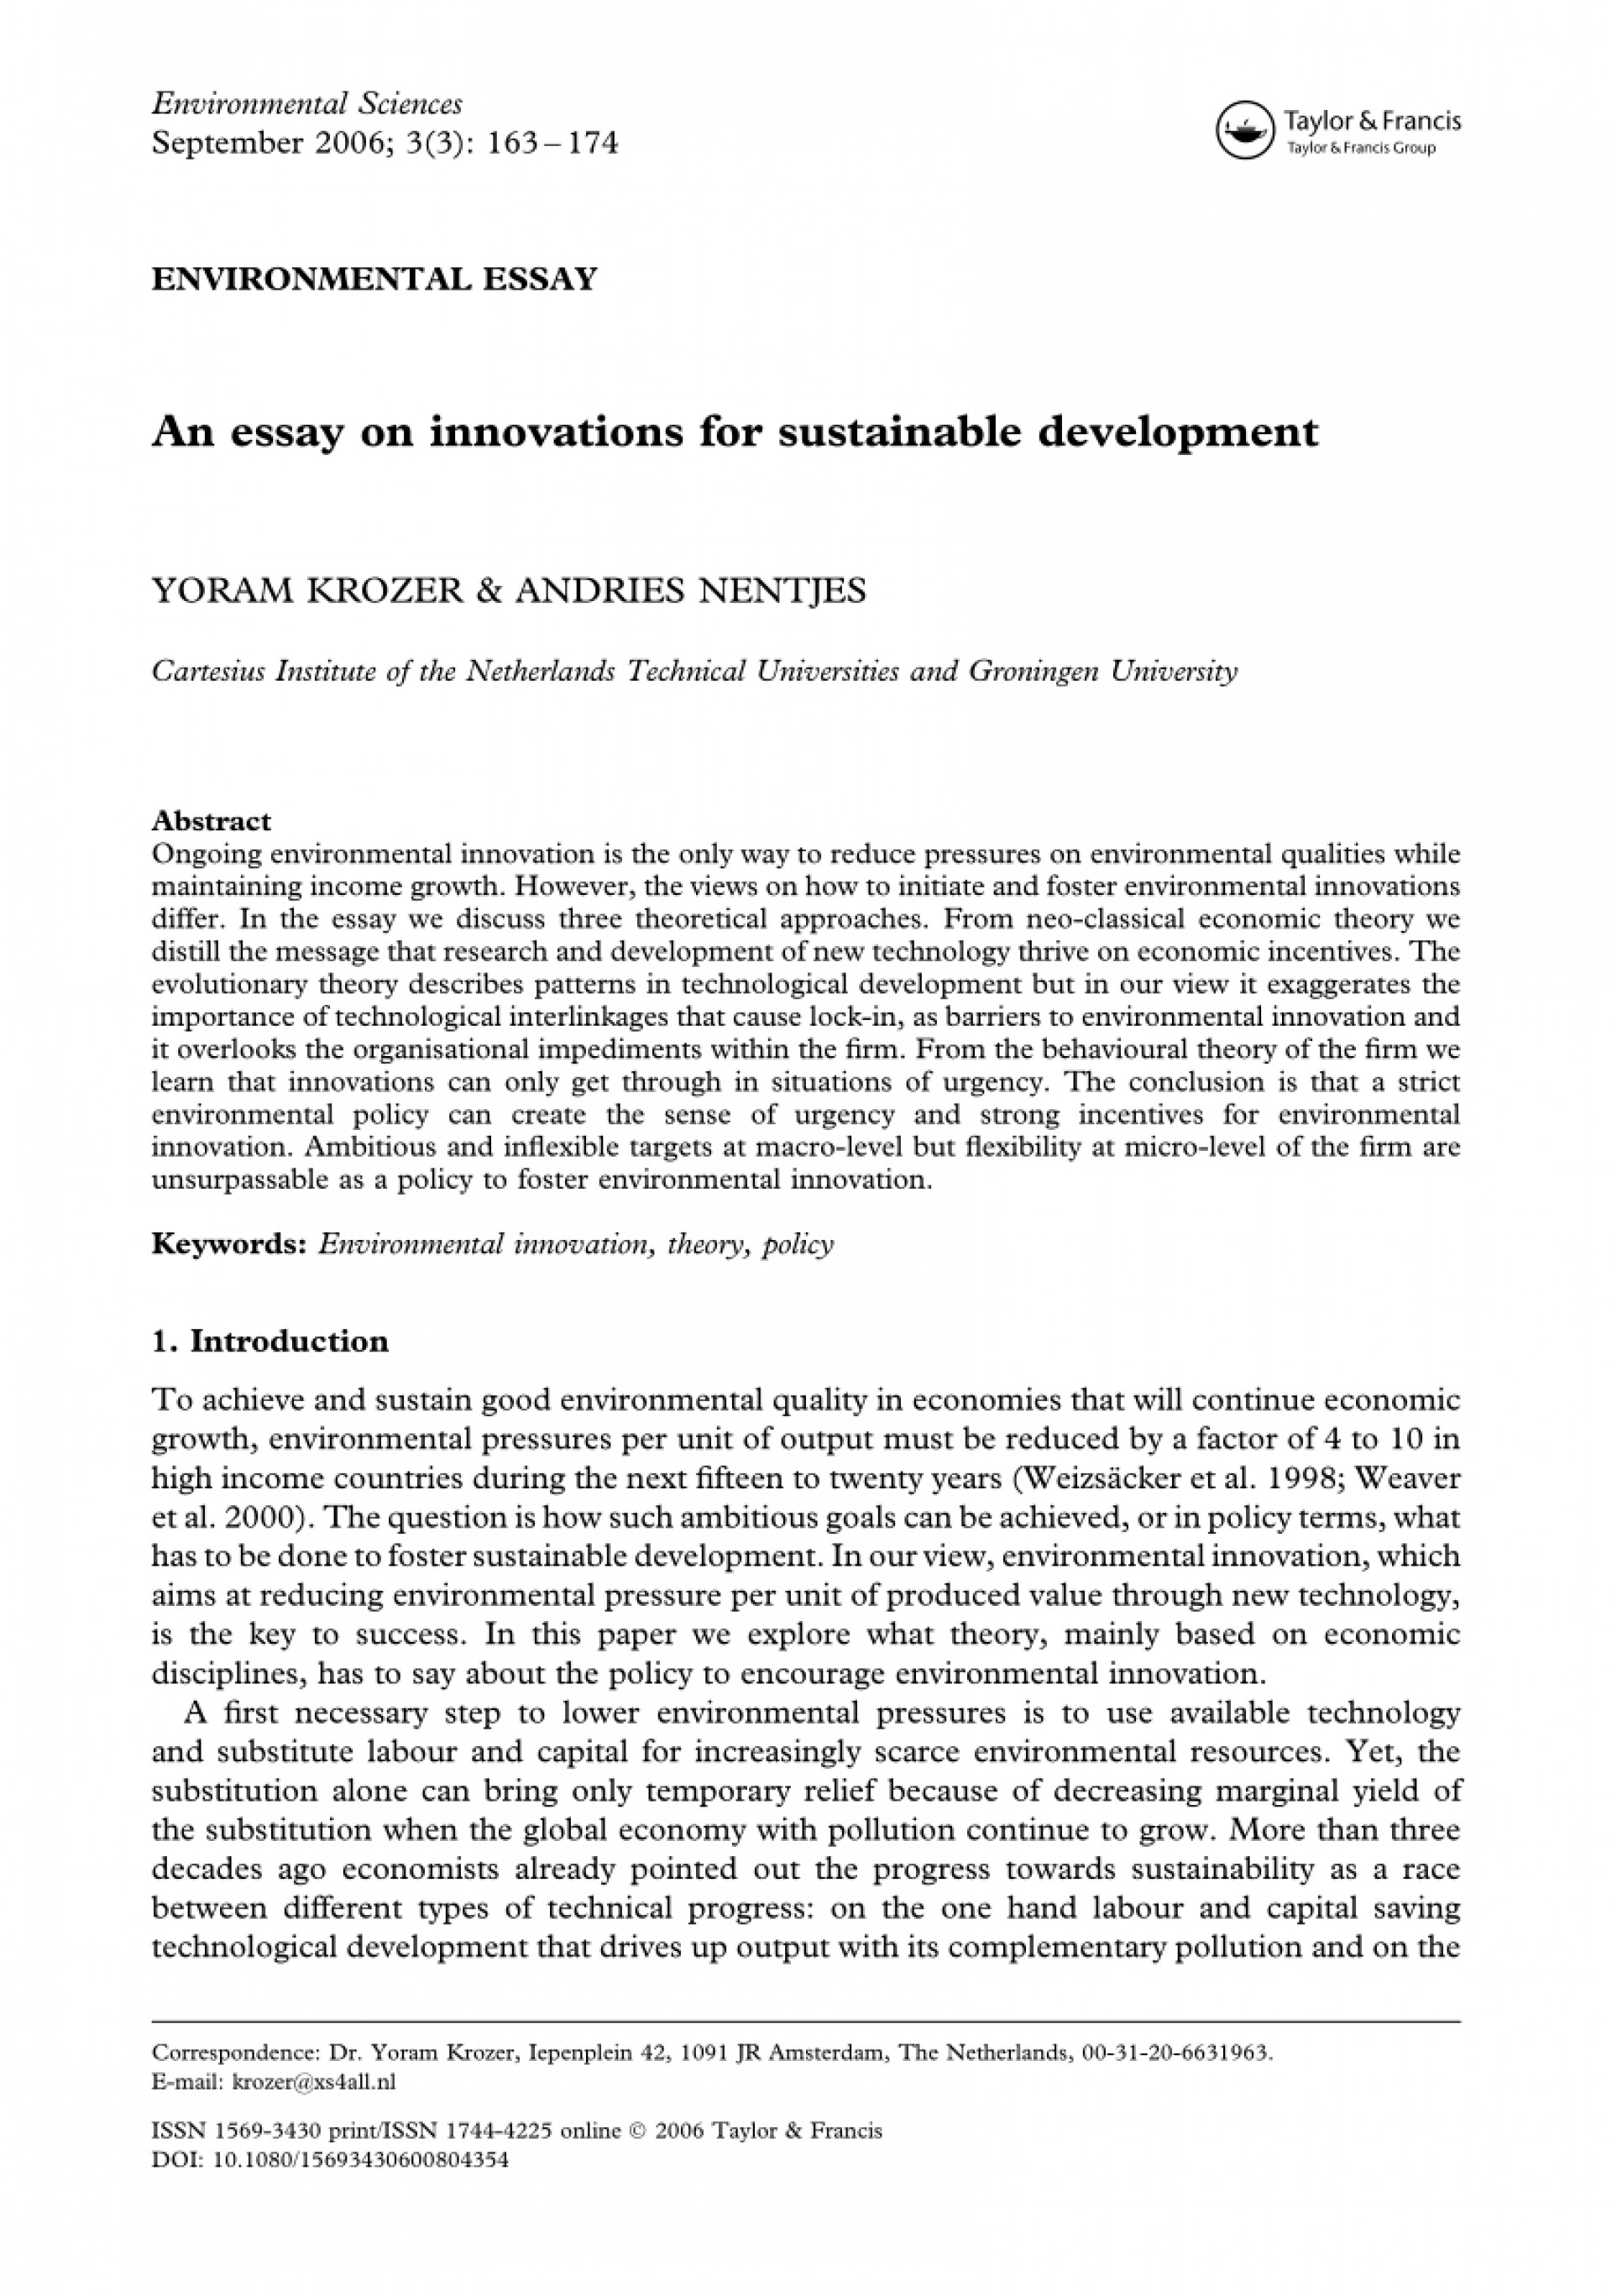 002 Essay Example On Sustainable Development And Environment Shocking Conservation 1920